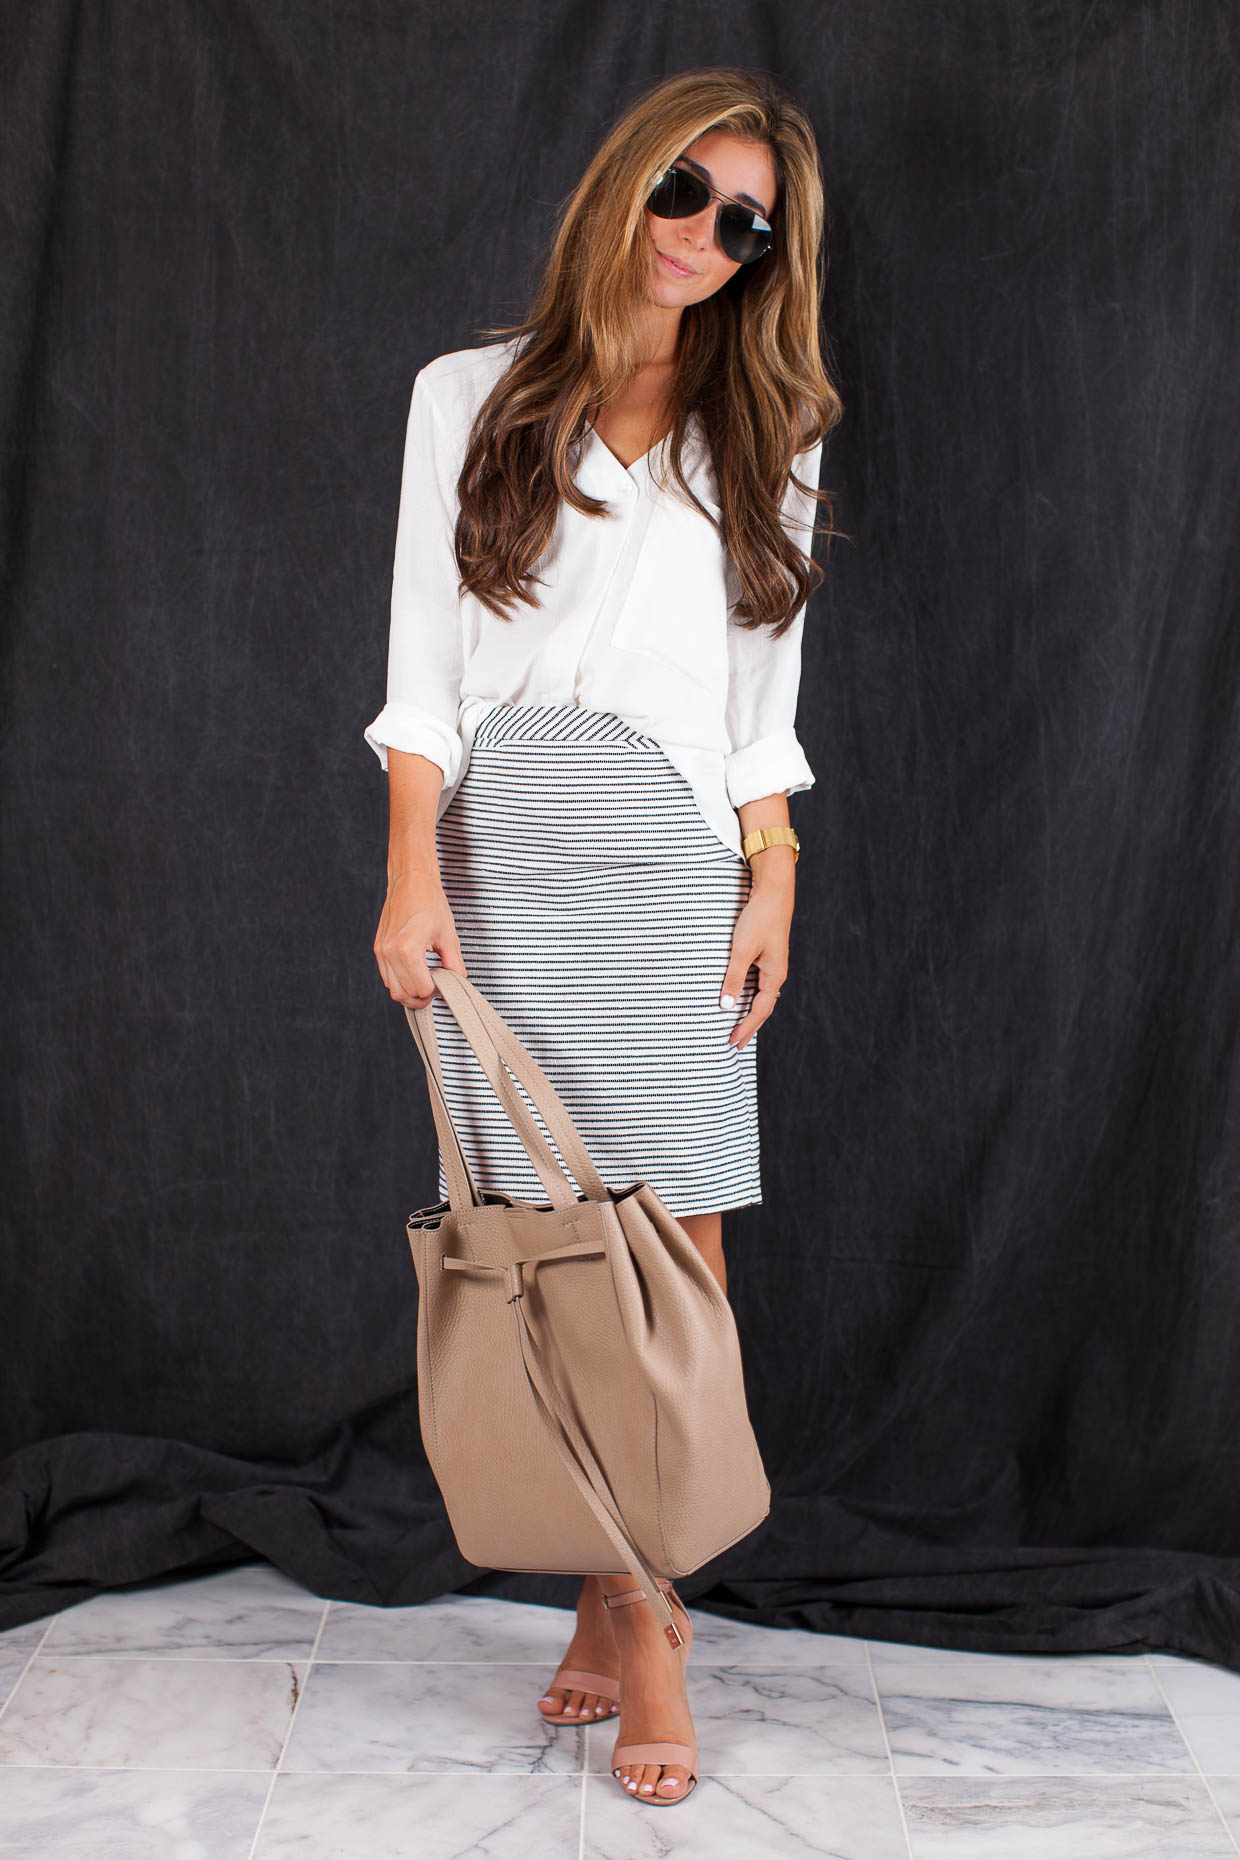 Fashion Blogger The Darling Detail is wearing a Topshop Slouchy Pocket Long Sleeve Blouse, a Halogen Welt Pocket Pencil Skirt, Steve Madden 'Carrson' Sandals, a Larsson & Jennings 'Lugano' Mesh Strap Watch, and is holding a BP. Faux Leather Drawstring Tote.